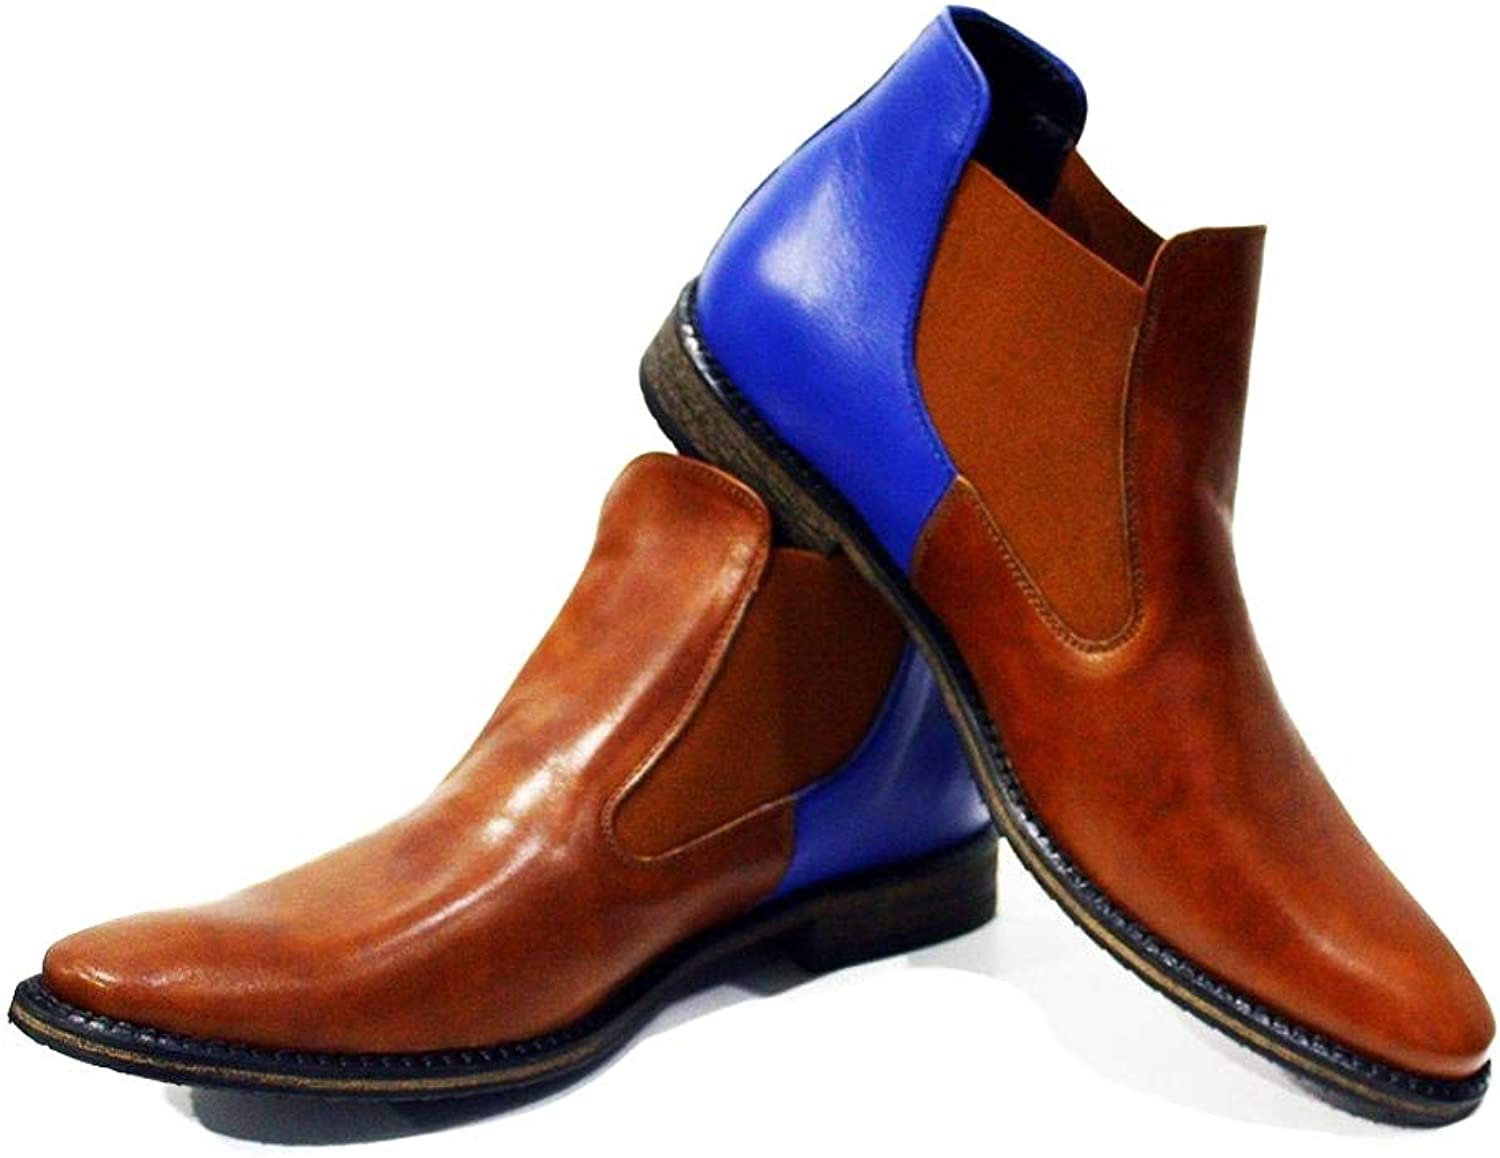 Peppeshoes Modello Ceglie Messapica - Handmade Italian Leather Mens color Brown Ankle Chelsea Boots - Cowhide Smooth Leather - Slip-On